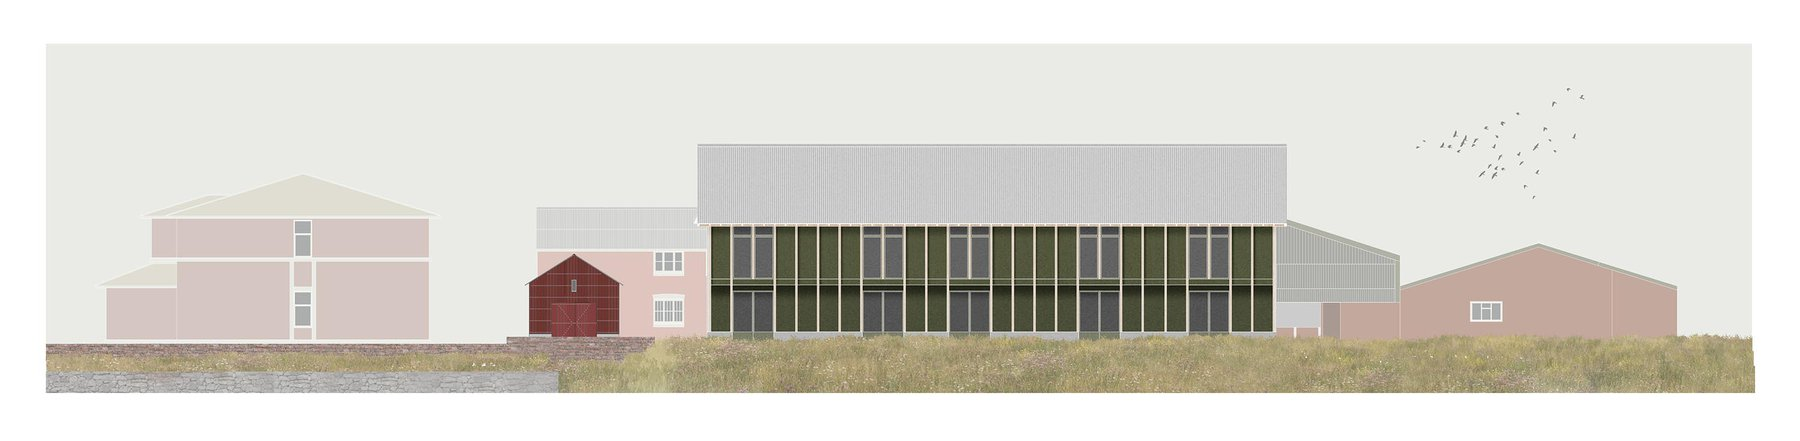 Group A, Proposed West Elevation.jpg